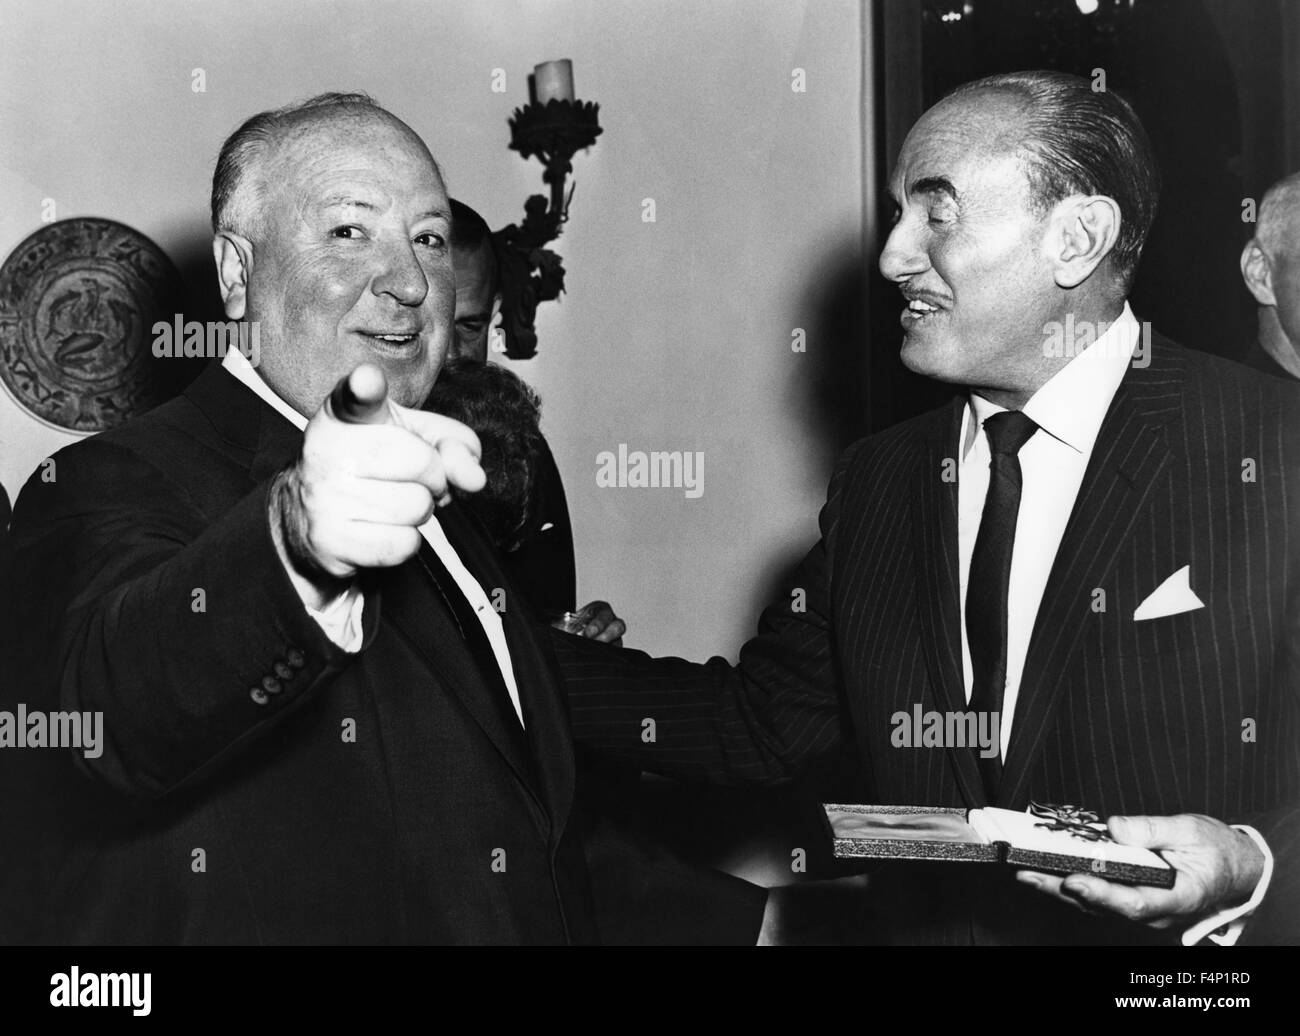 Alfred Hitchcock with Jack Warner - Stock Image